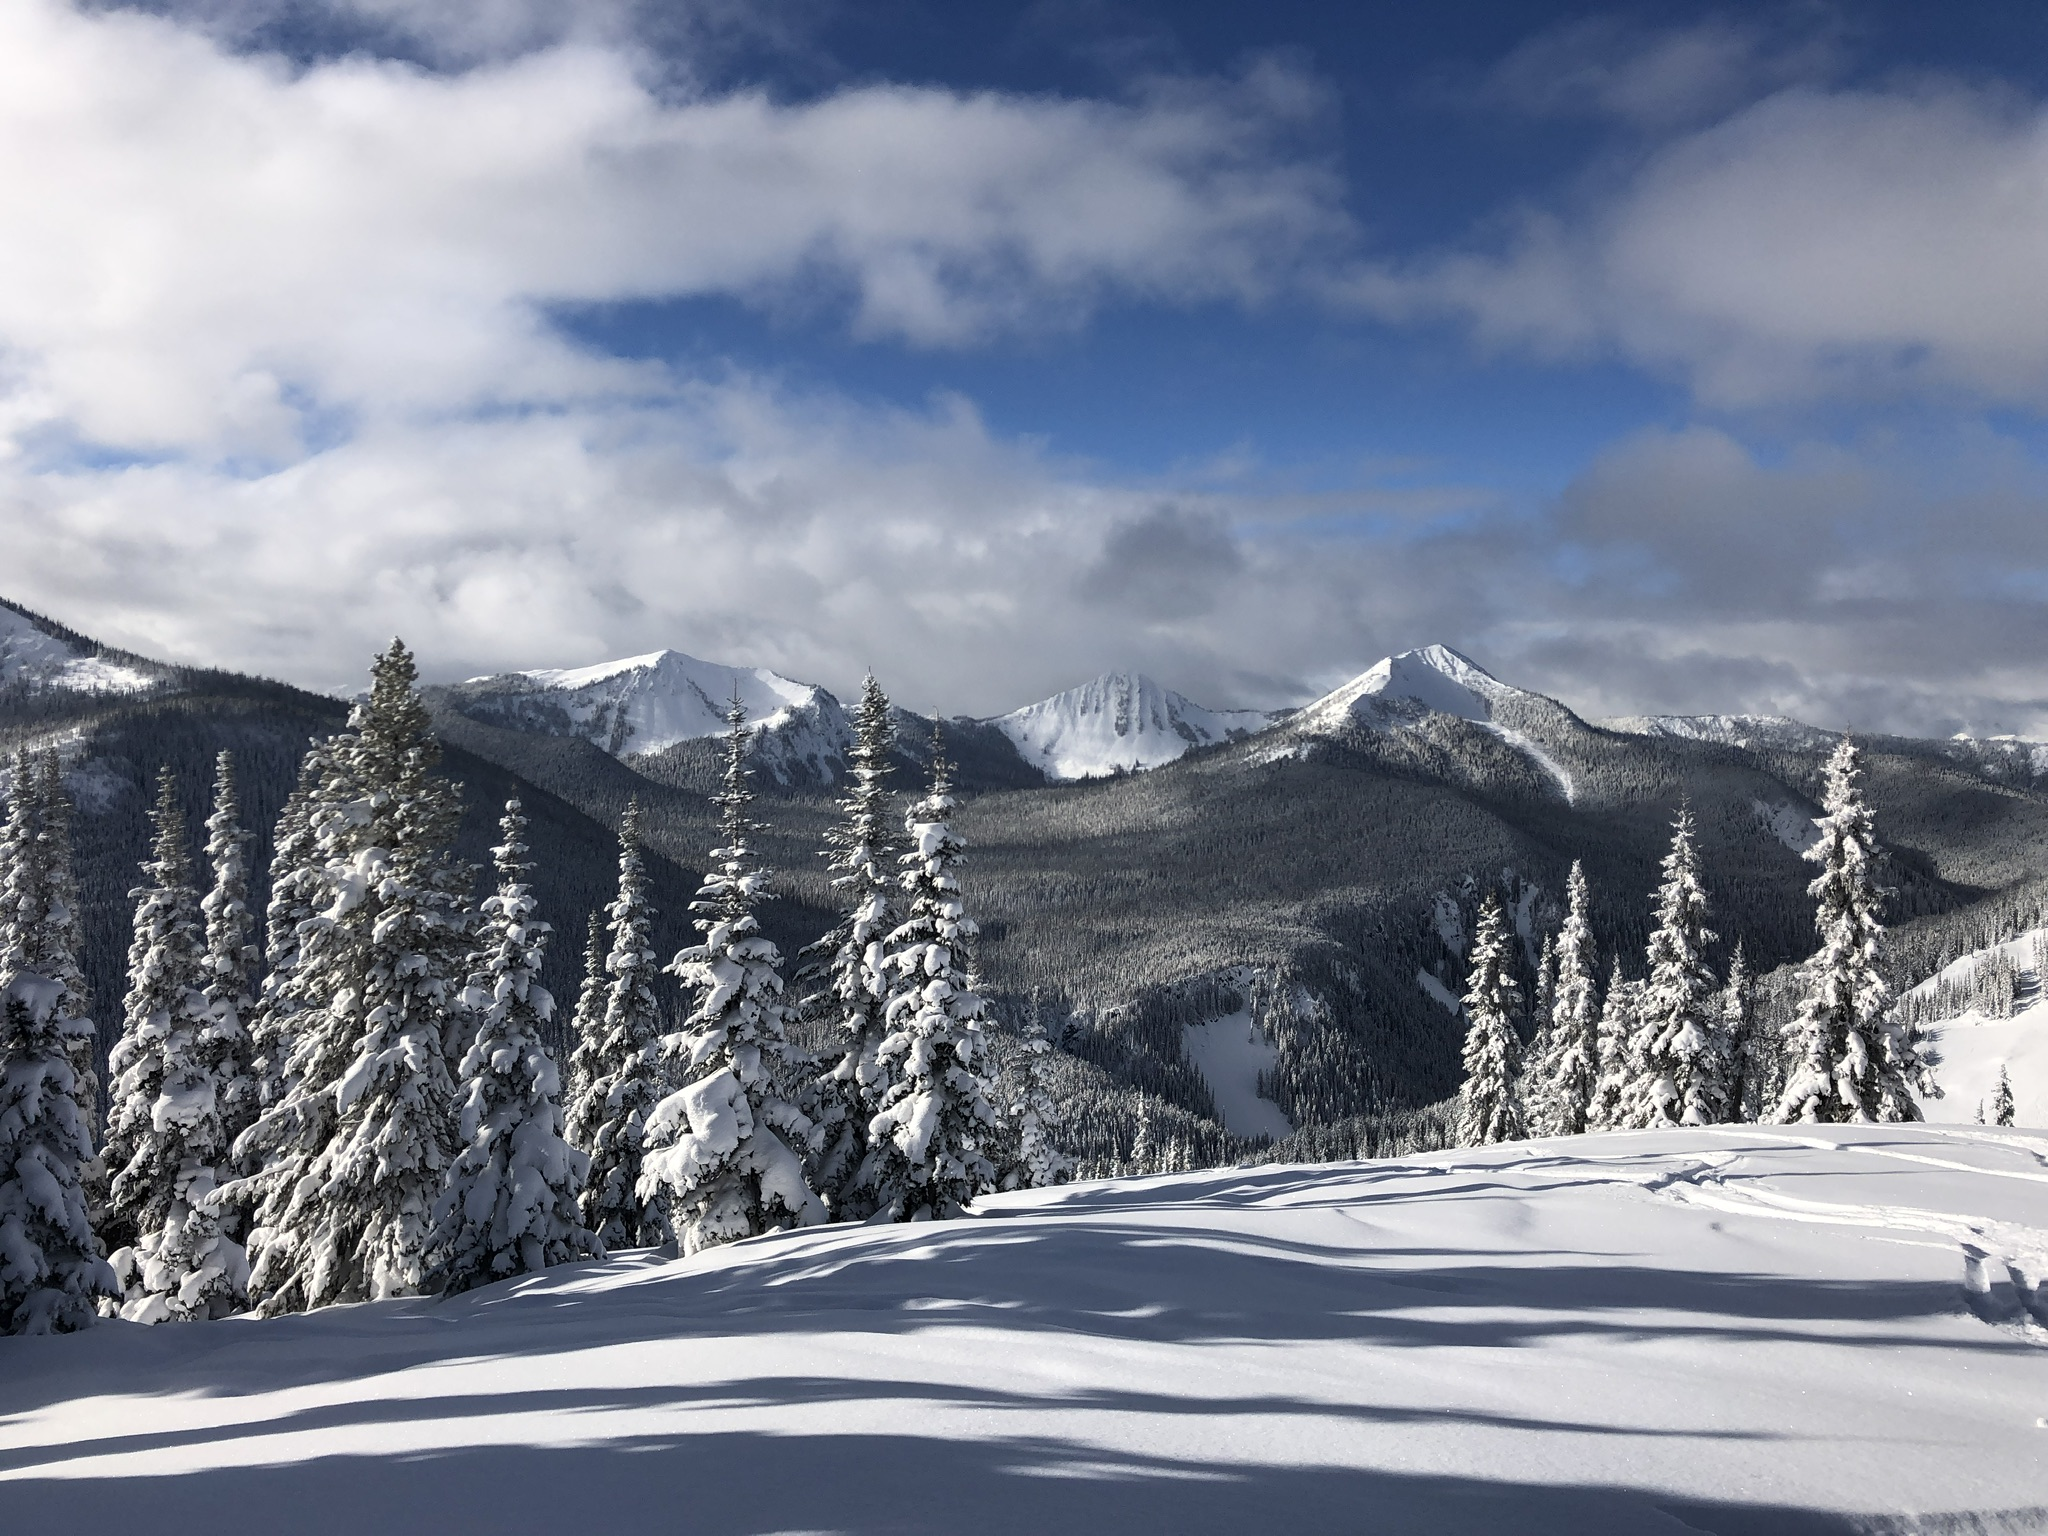 The View, Manning Park Resort